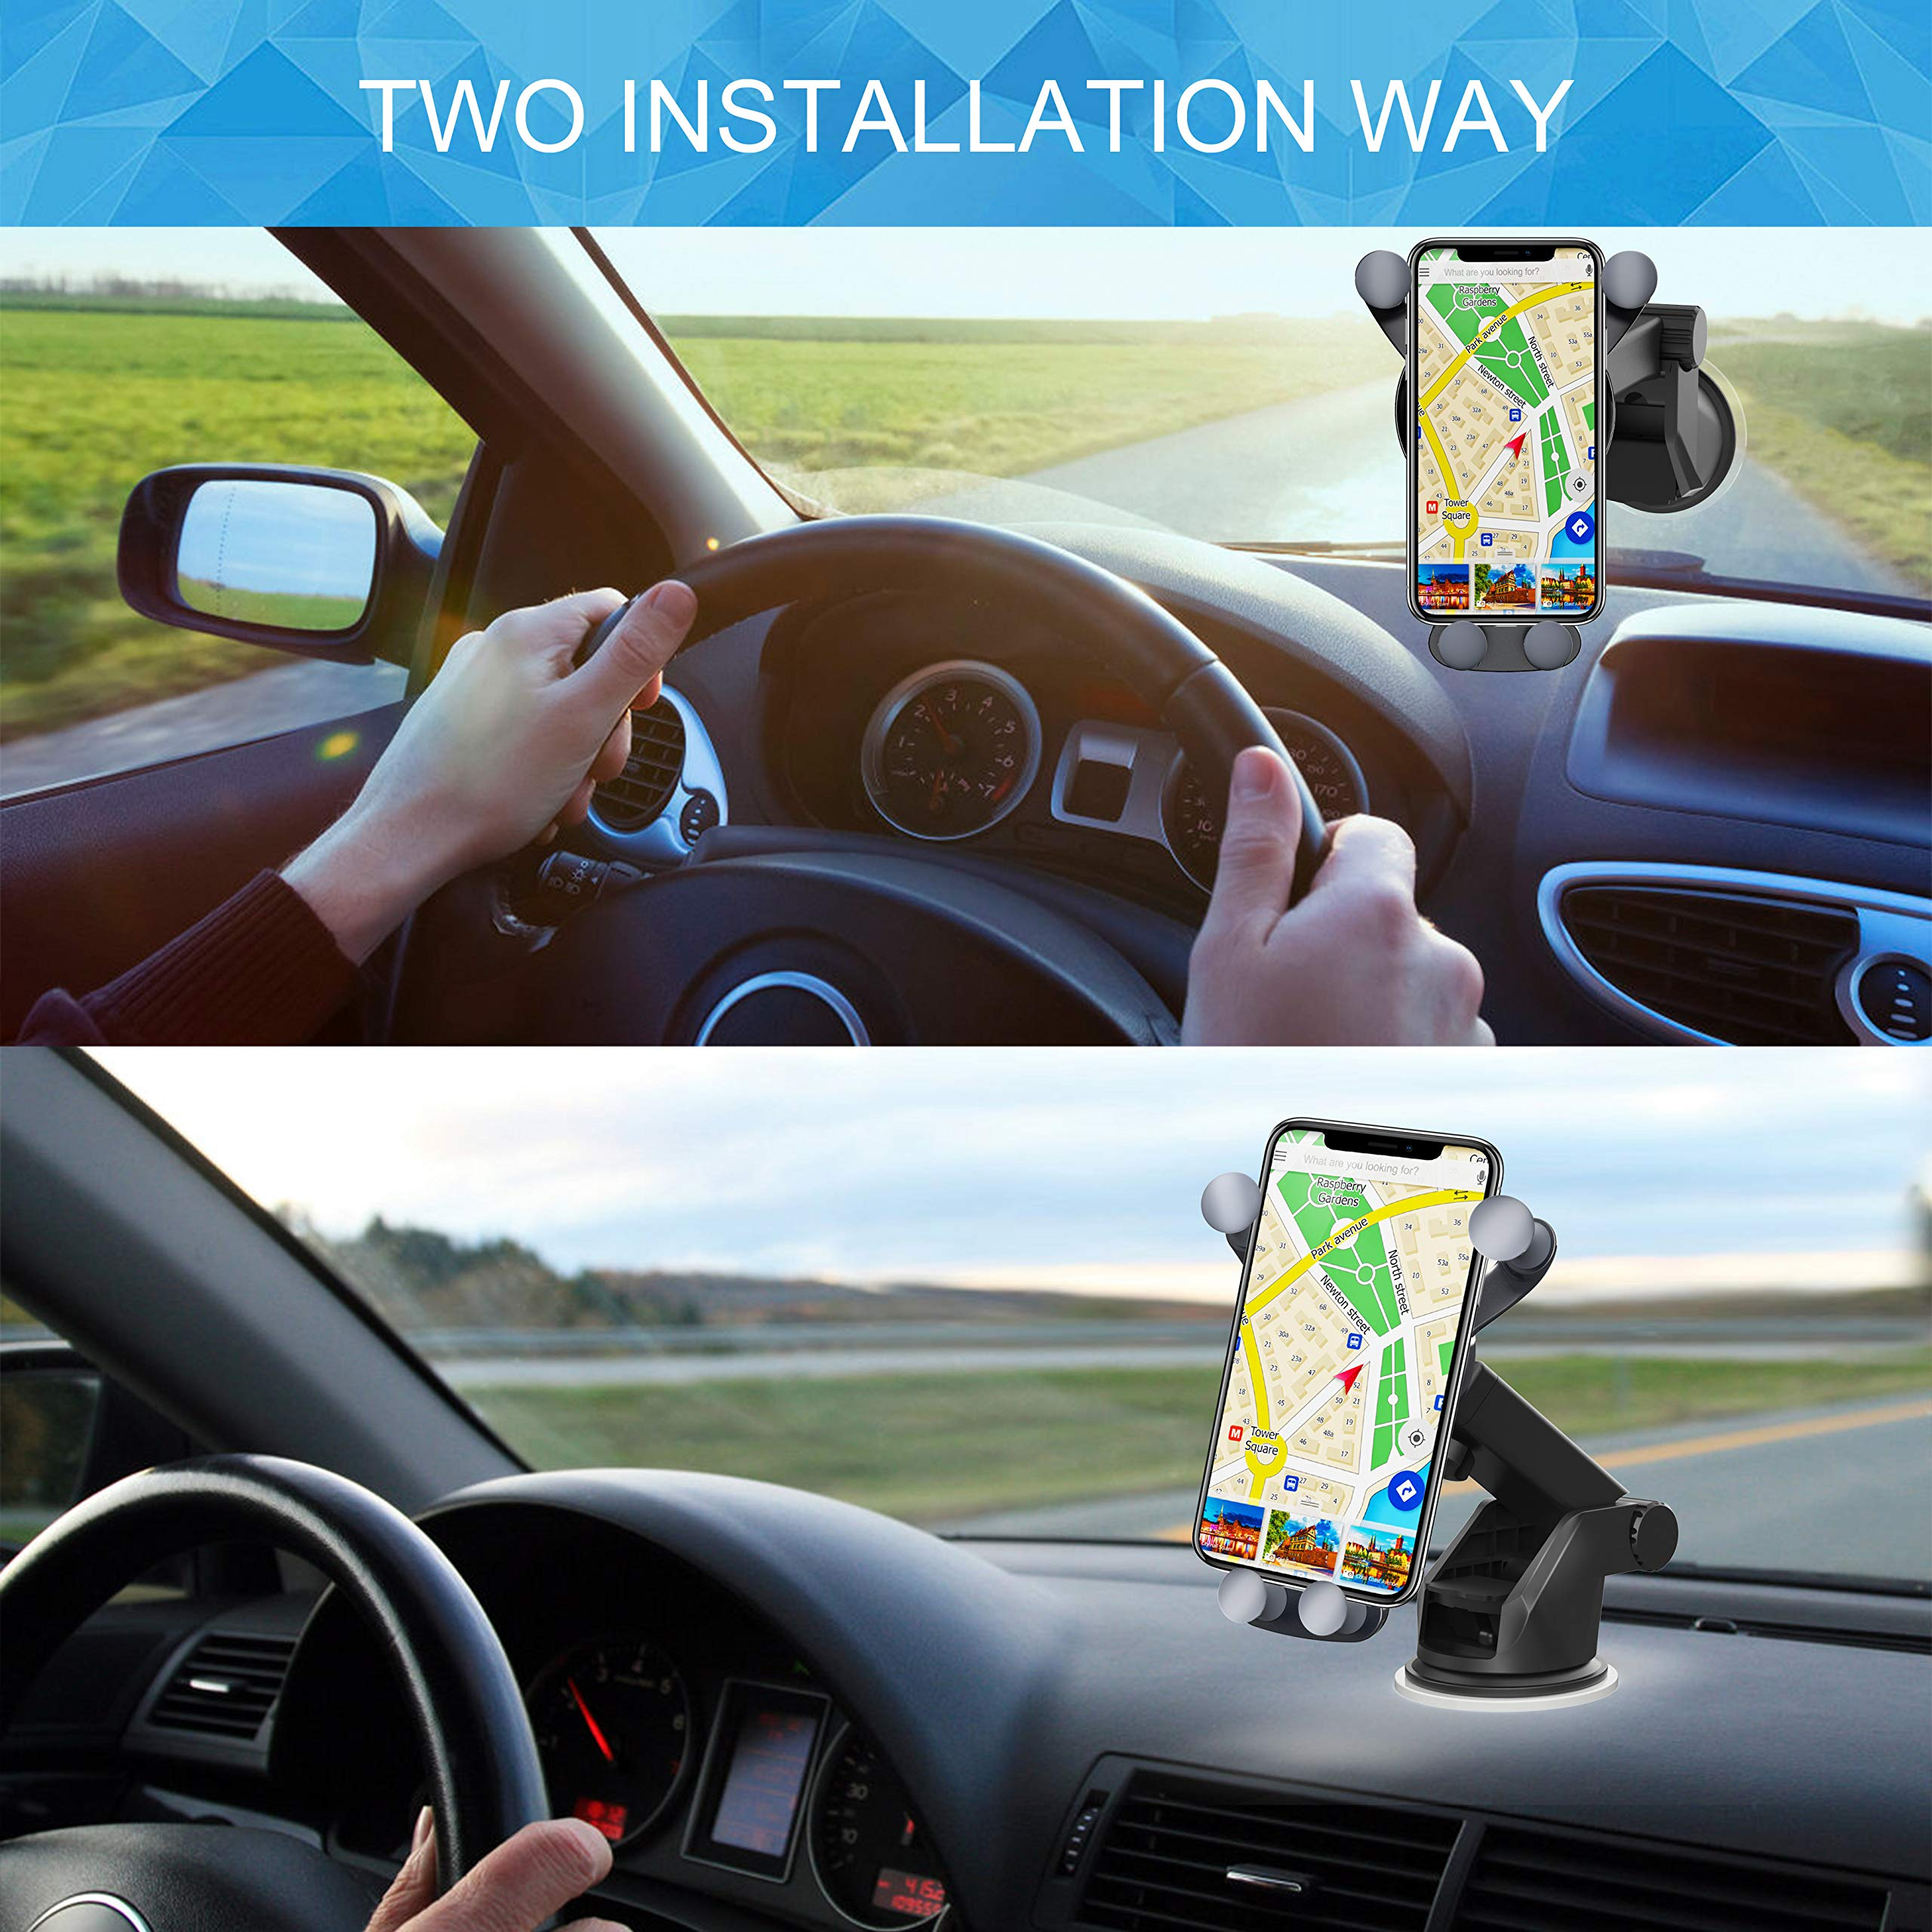 BESTHING 7.5W & 10W Wireless Charger, Dashboard & Windshield Car Mount, Cell Phone Holder, 10W Compatible for Samsung Galaxy S9/S9+/S8/S8+/Note 8, 7.5W Compatible for iPhone Xs Max/Xs/XR/X/ 8/8 Plus by BESTHING (Image #7)